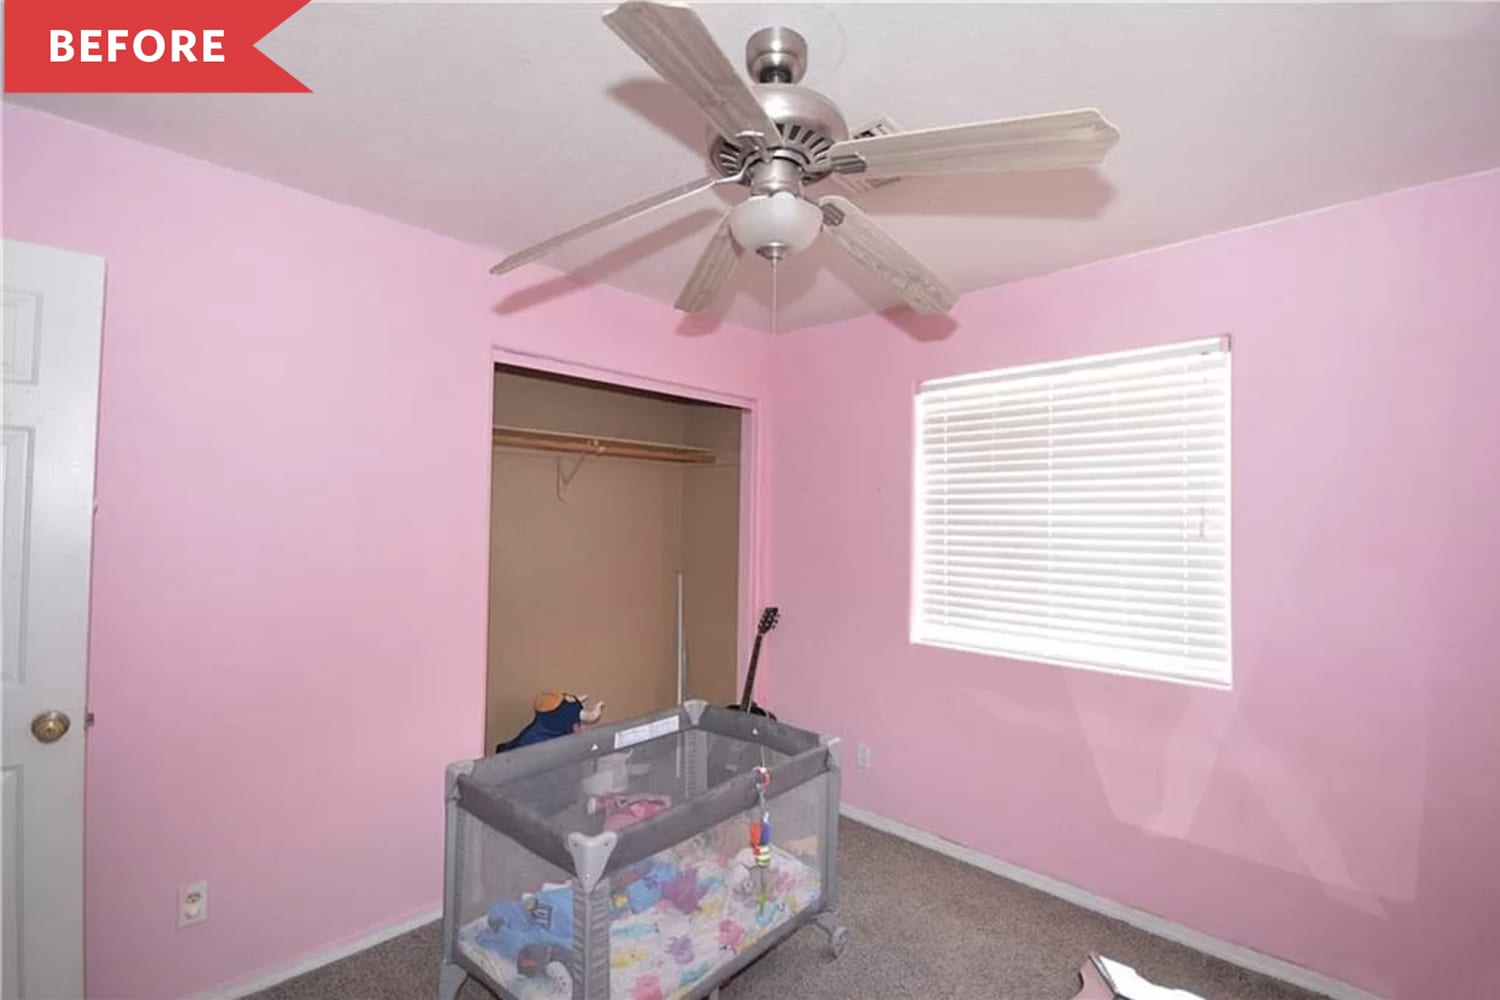 Before and After: A Tiny 100-Square-Foot Bedroom Gets a Big Style Transformation